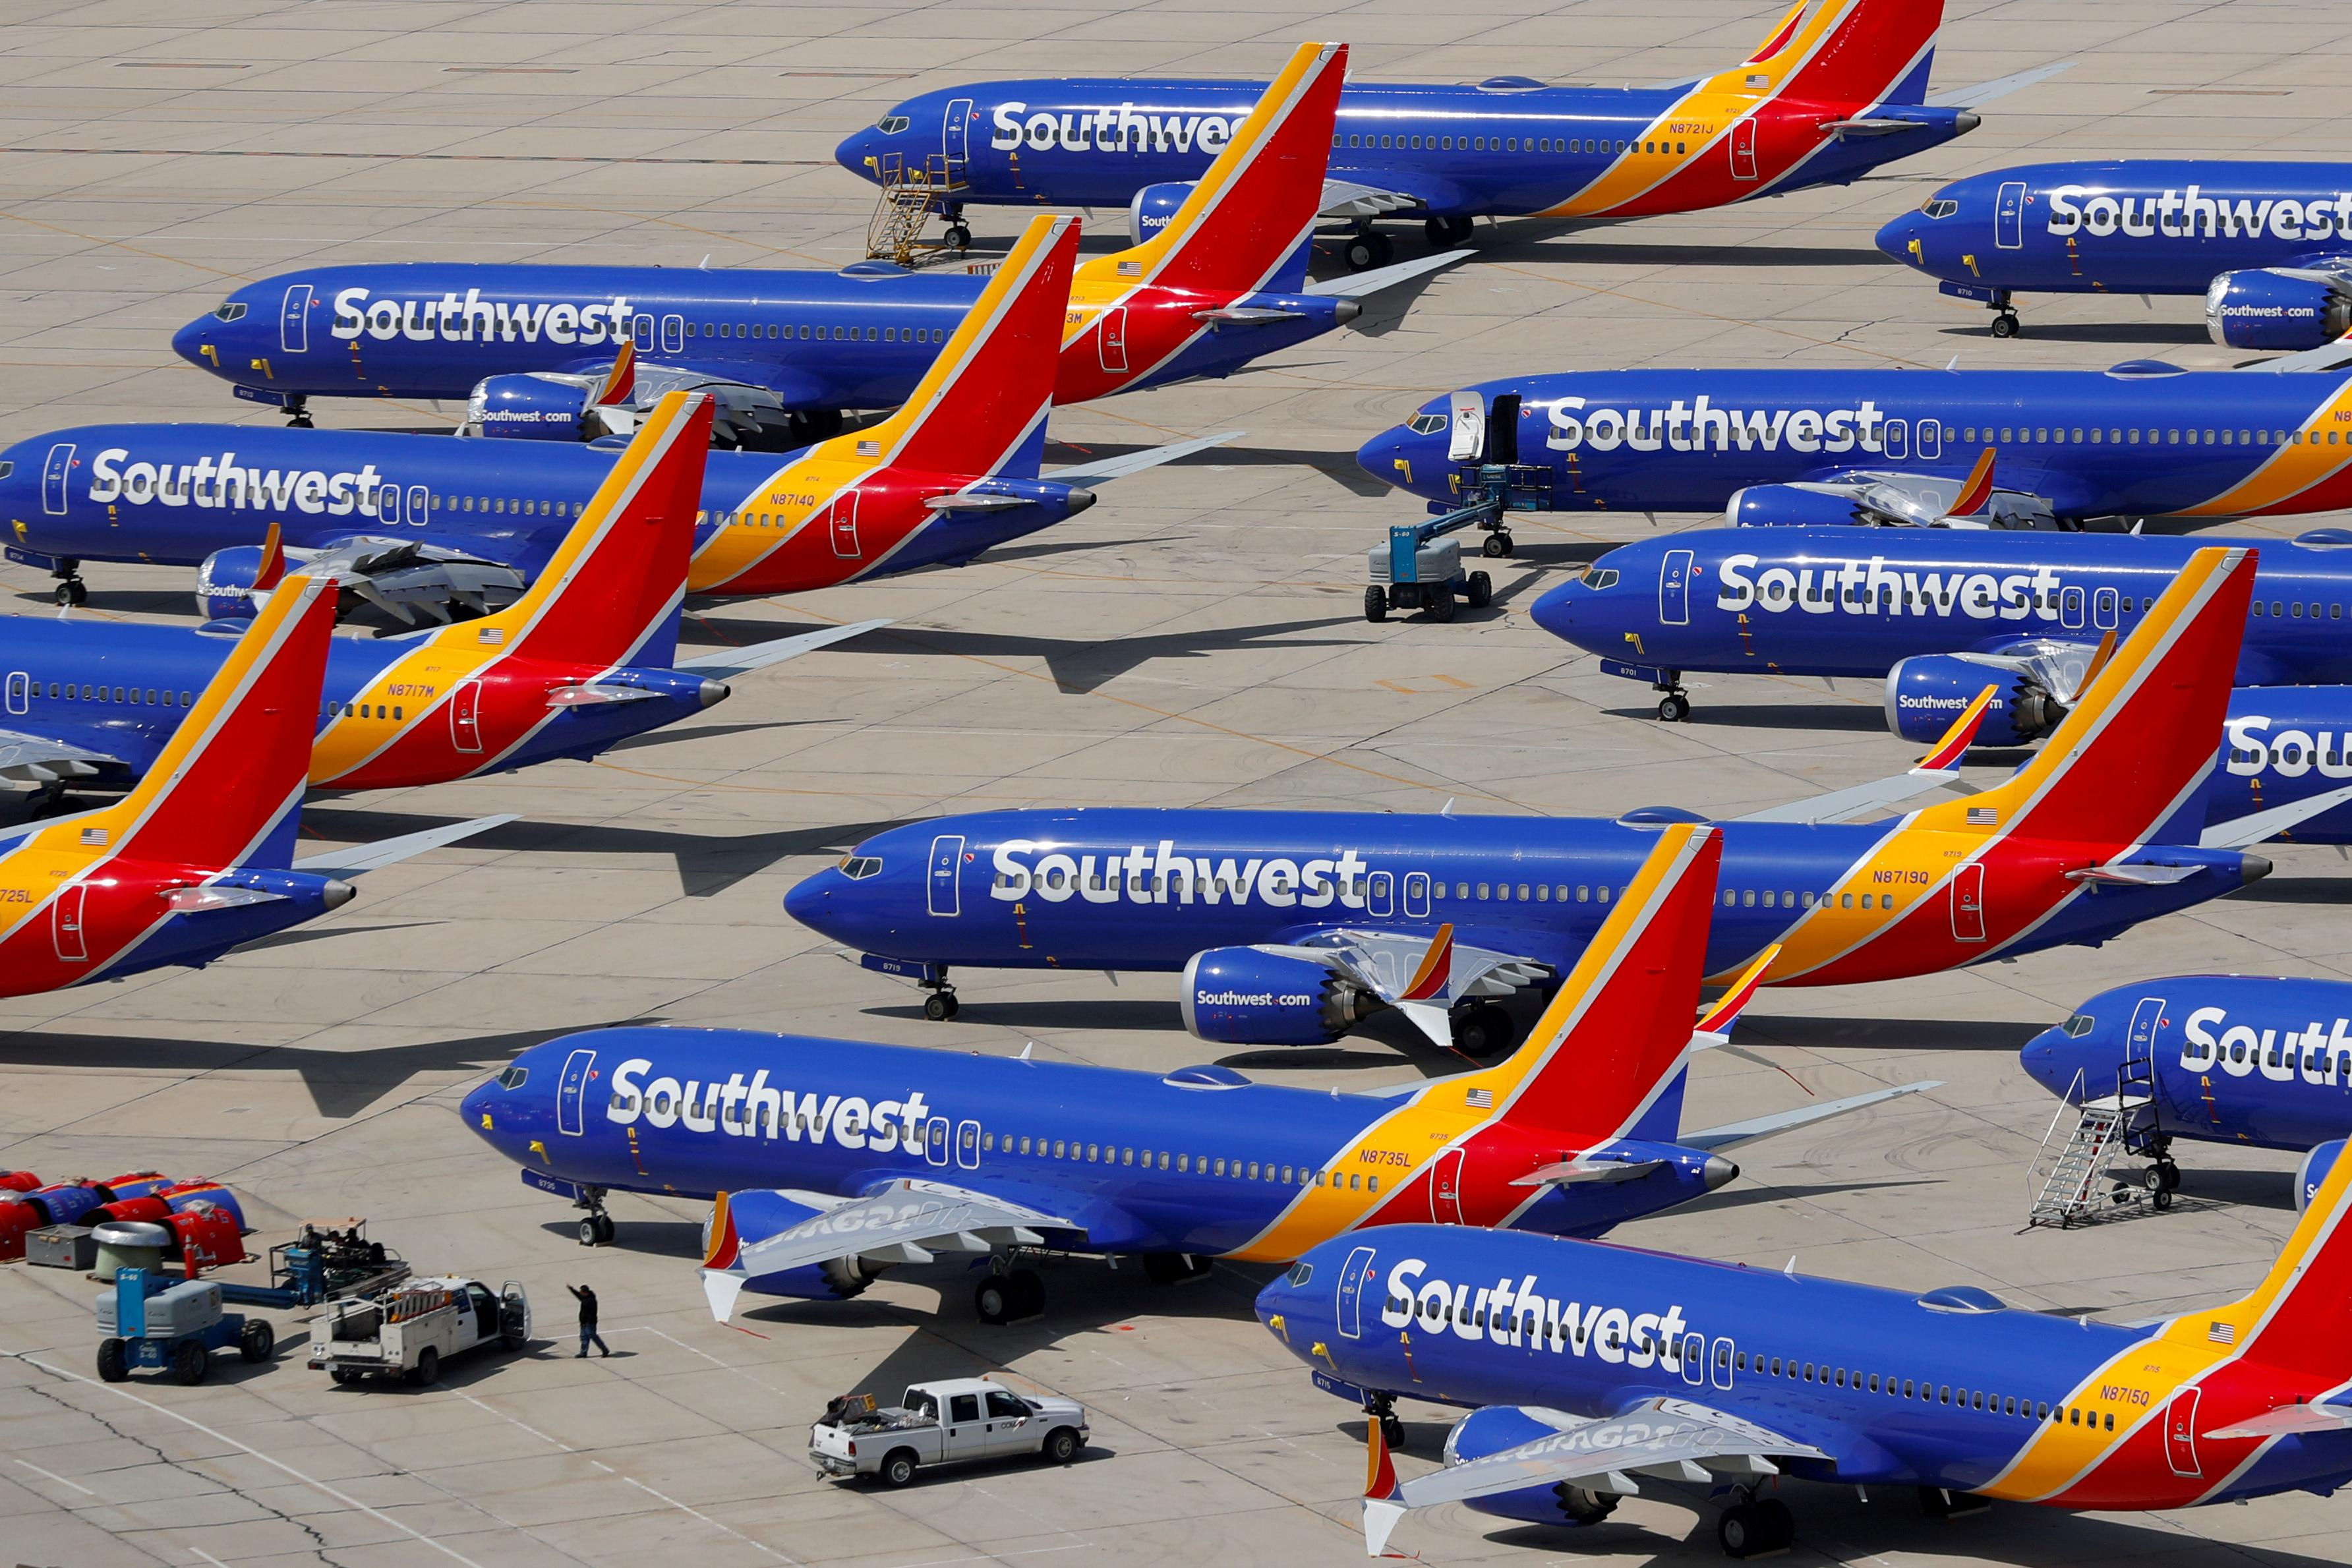 Southwest pilots union says Boeing may be trying to hasten 737 MAX...